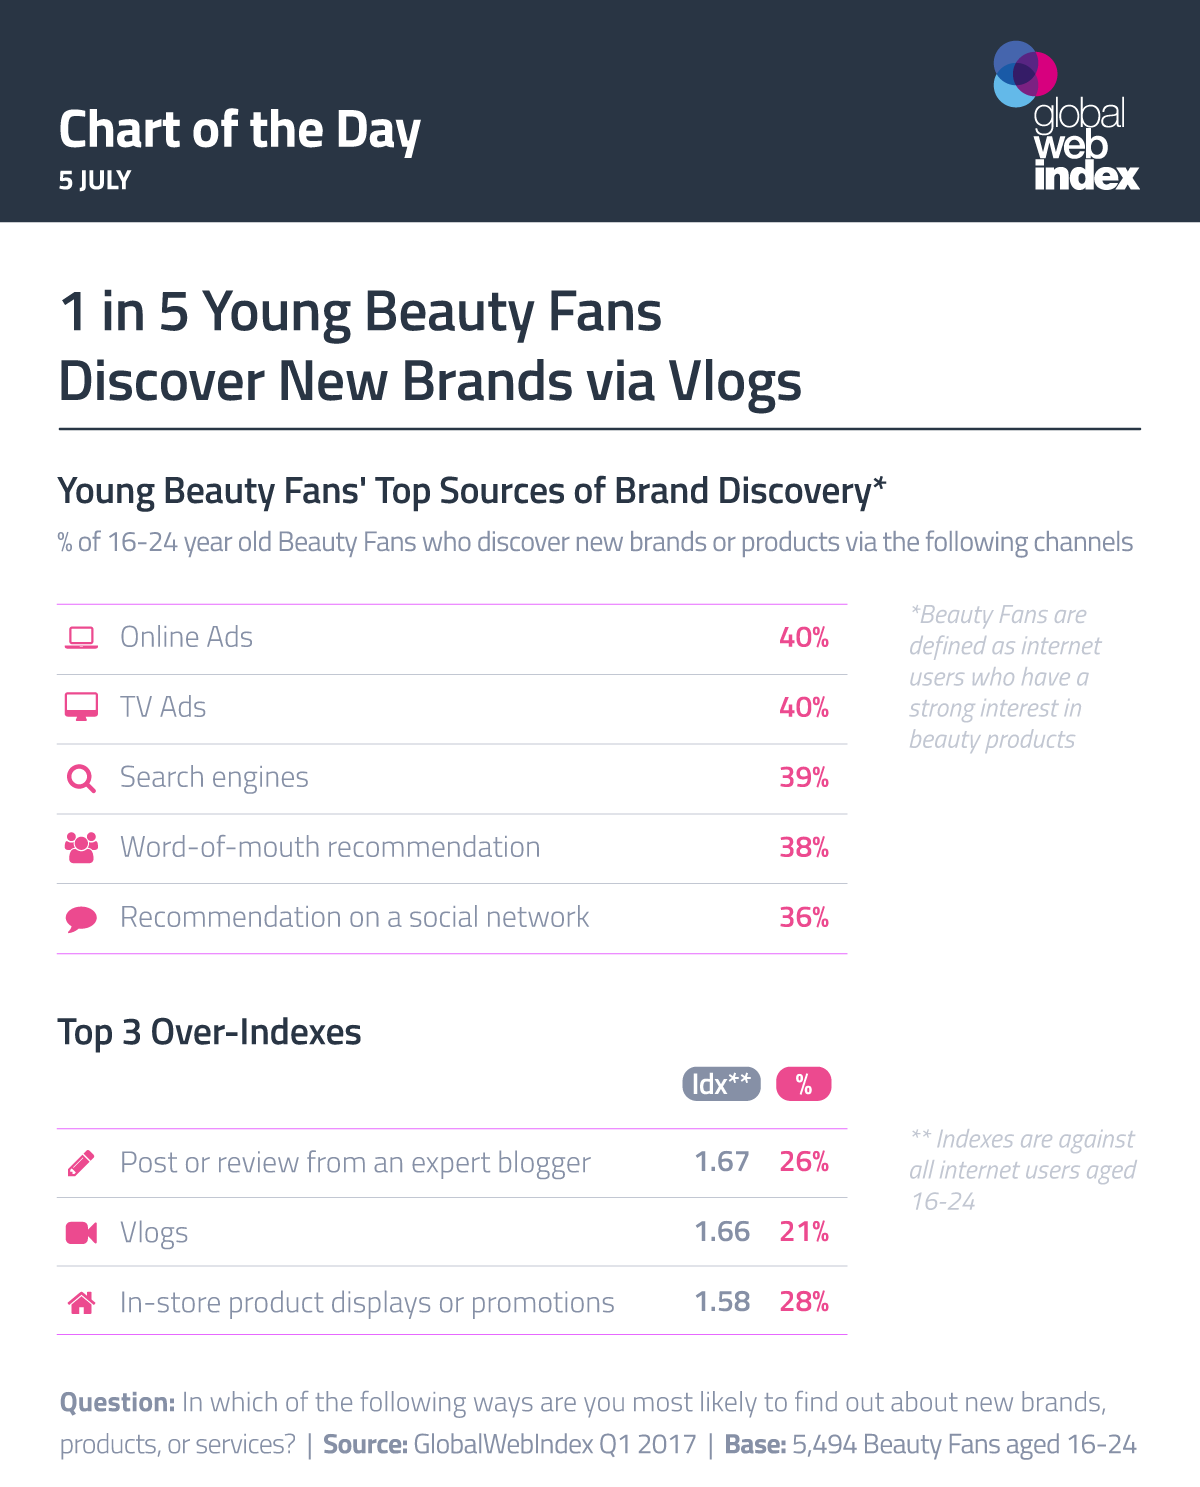 1 in 5 Young Beauty Fans Discover New Brands via Vlogs